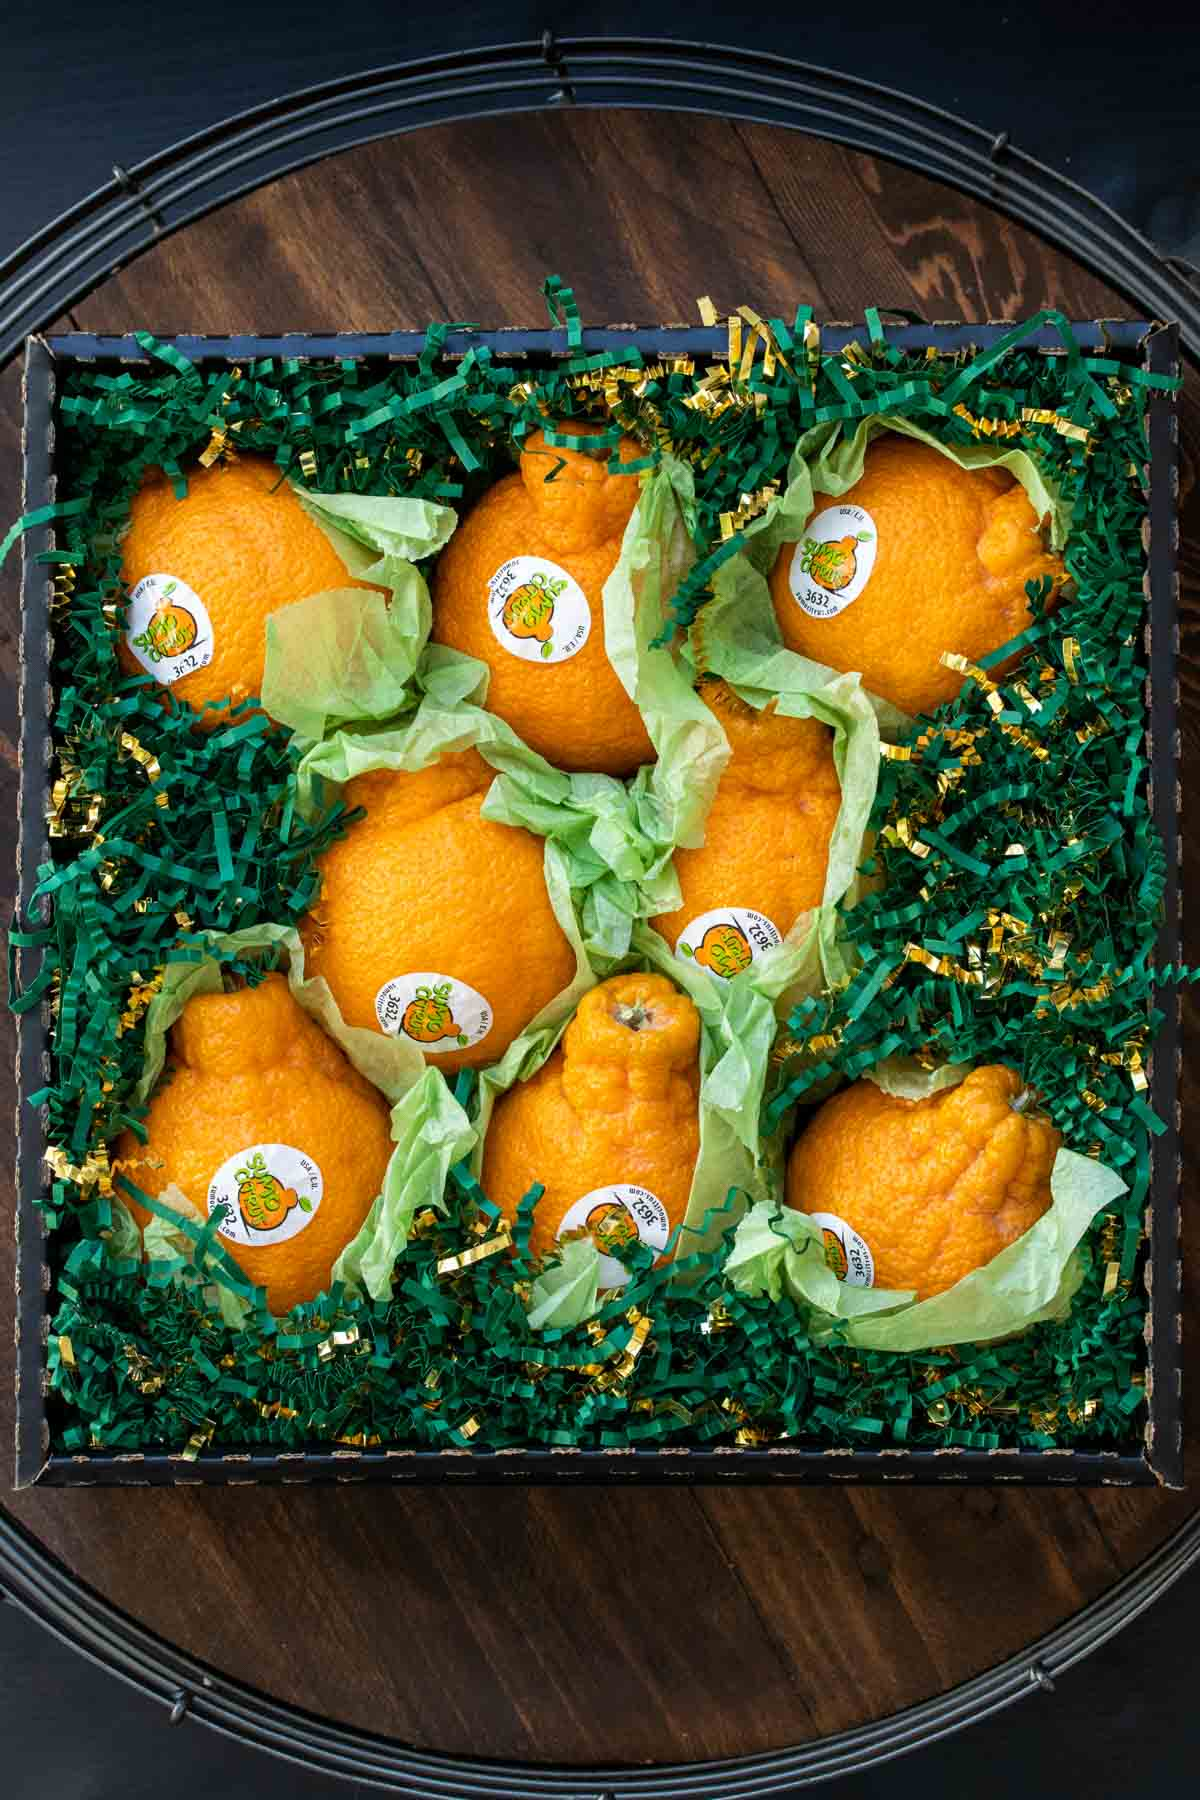 Oranges in box filled with green paper grass shreds